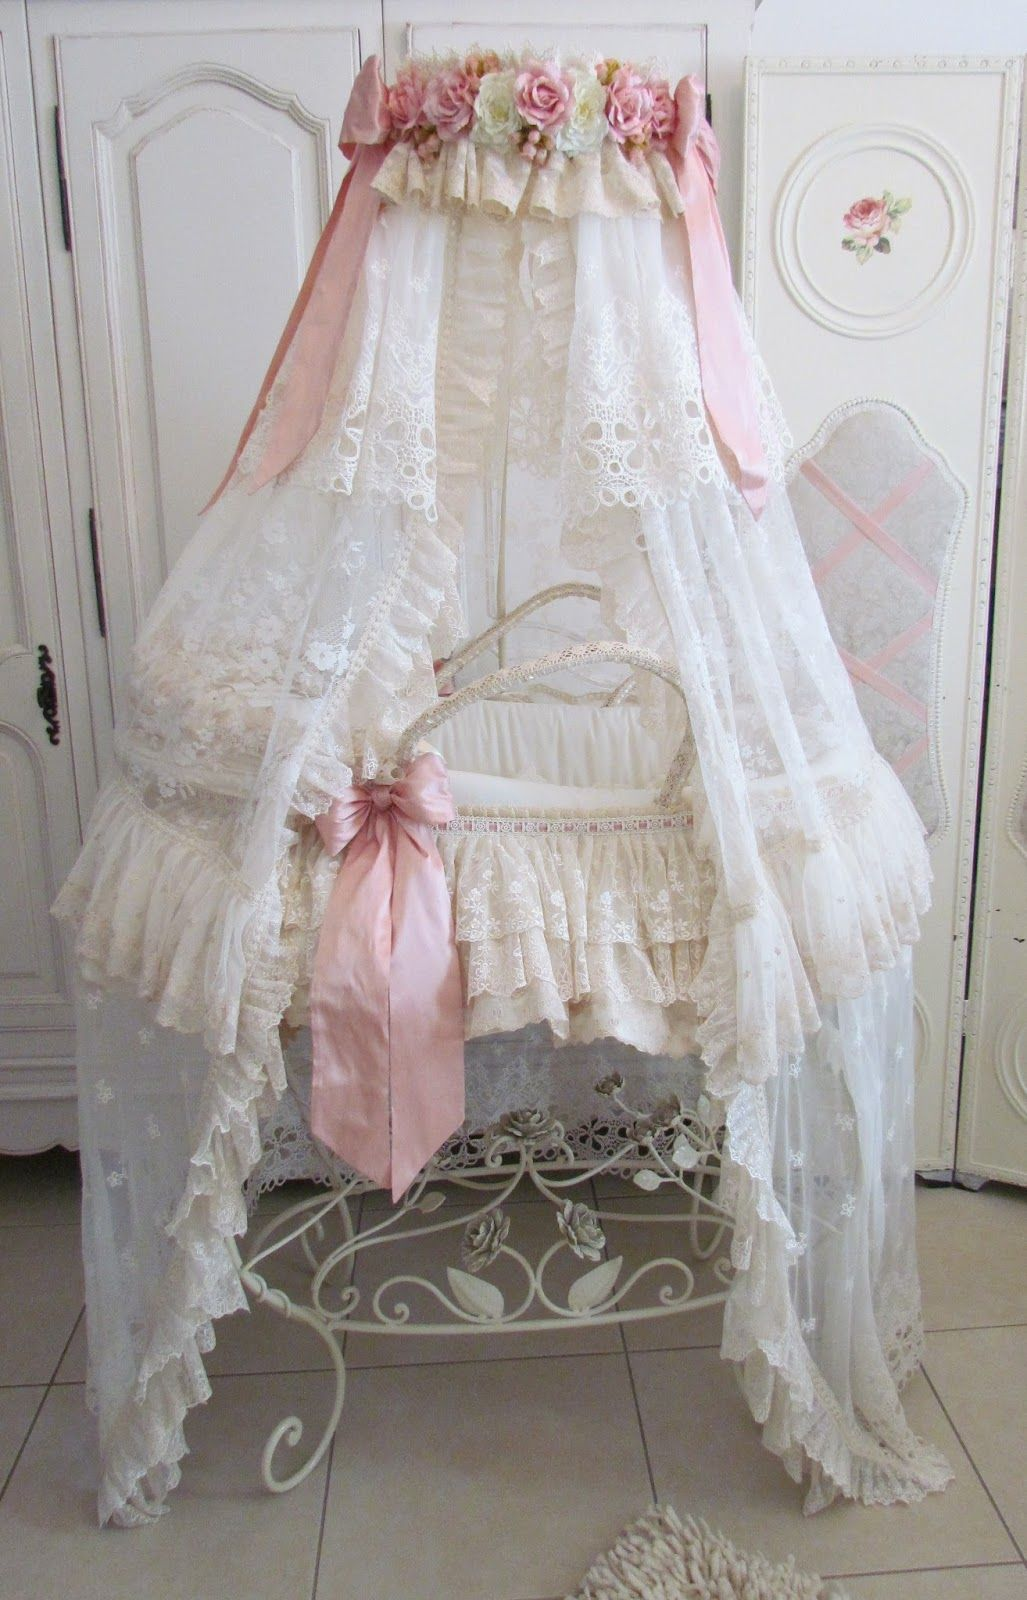 Oh Wow If I Could Do It All Over I Would Make Sure I Find A Bassinet Like This Shabby Chic Baby Furniture Shabby Chic Baby Shabby Chic Baby Nursery